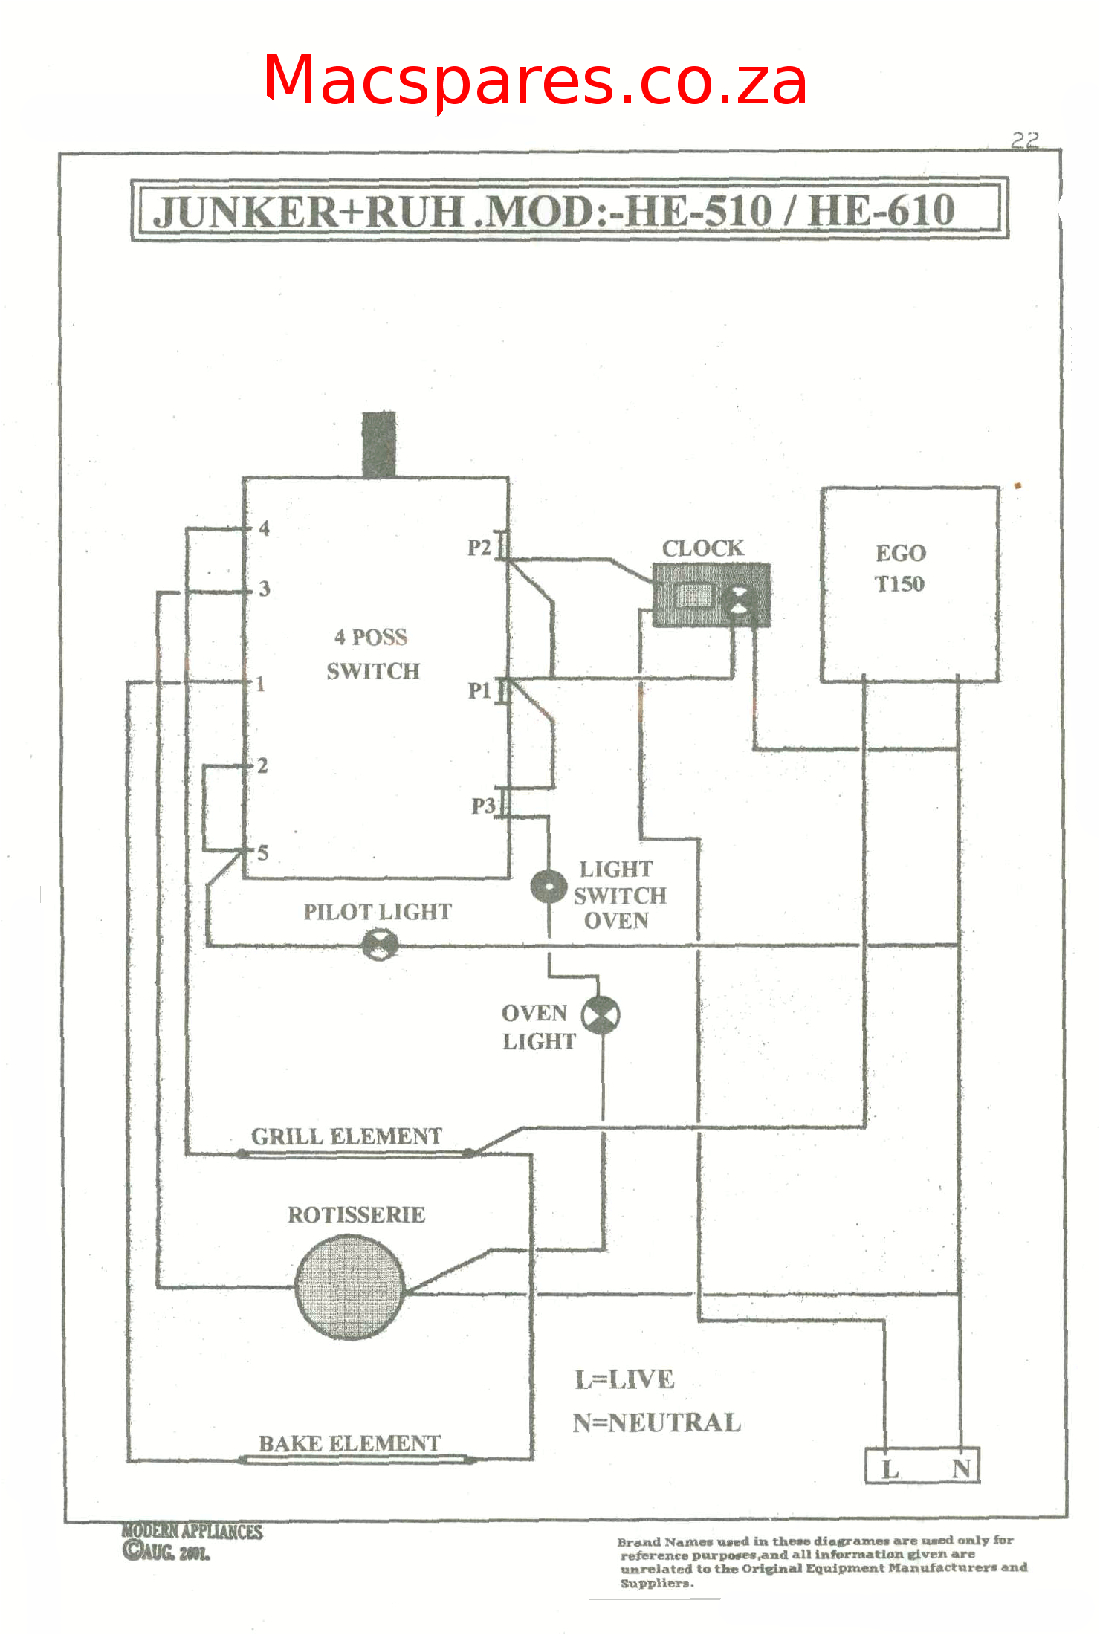 Ego T Wiring Diagram Wiring Diagrams Stoves Switches and thermostats Macspares